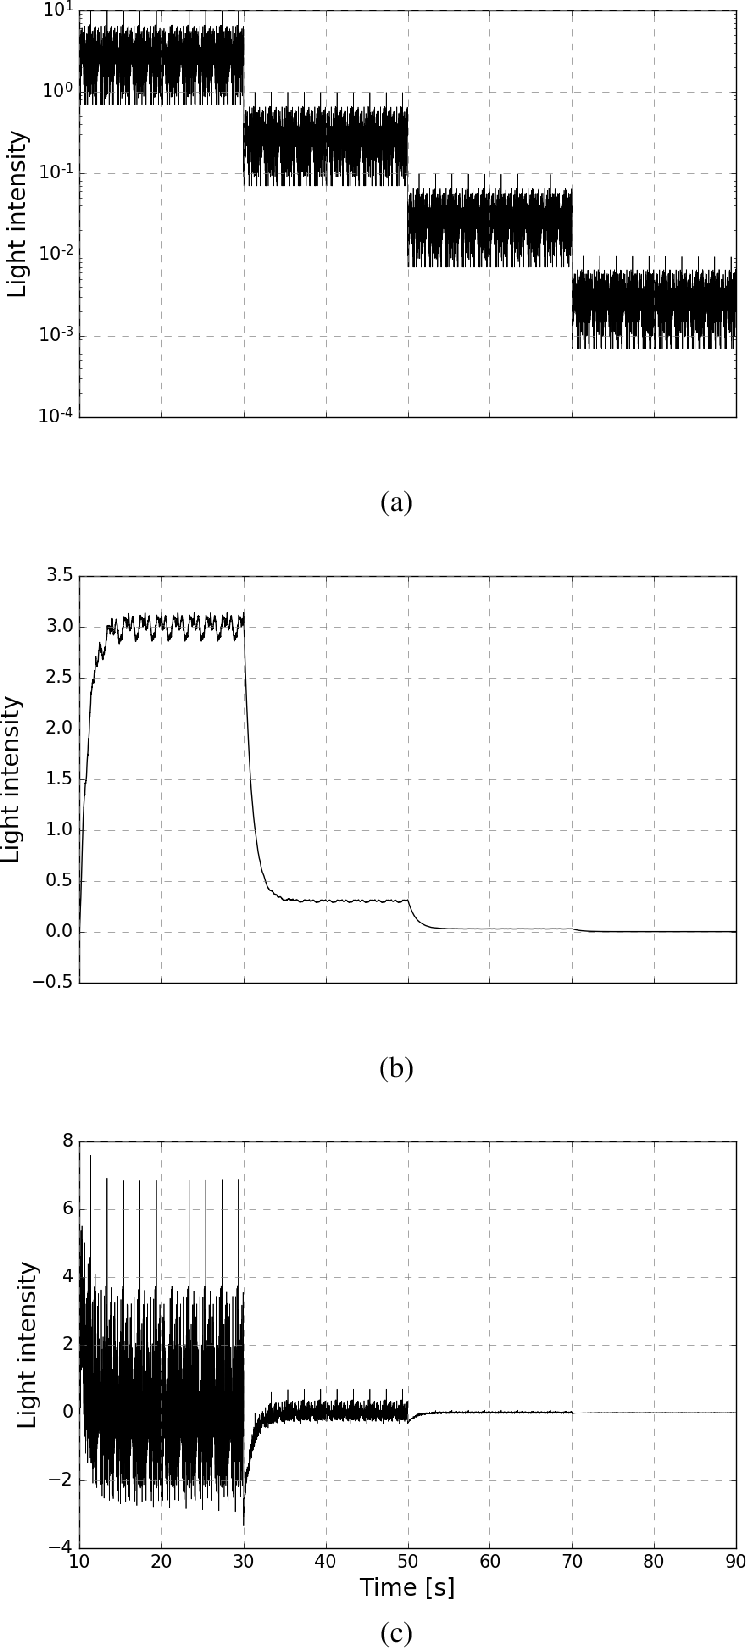 Fig. 4.5 Wild and mutant light stimuli decomposition into their mean and contrast components. (a) naturalistic stimuli for the wild-type fly. Its mean and mean-removed components are shown in (b) and (c) respectively.